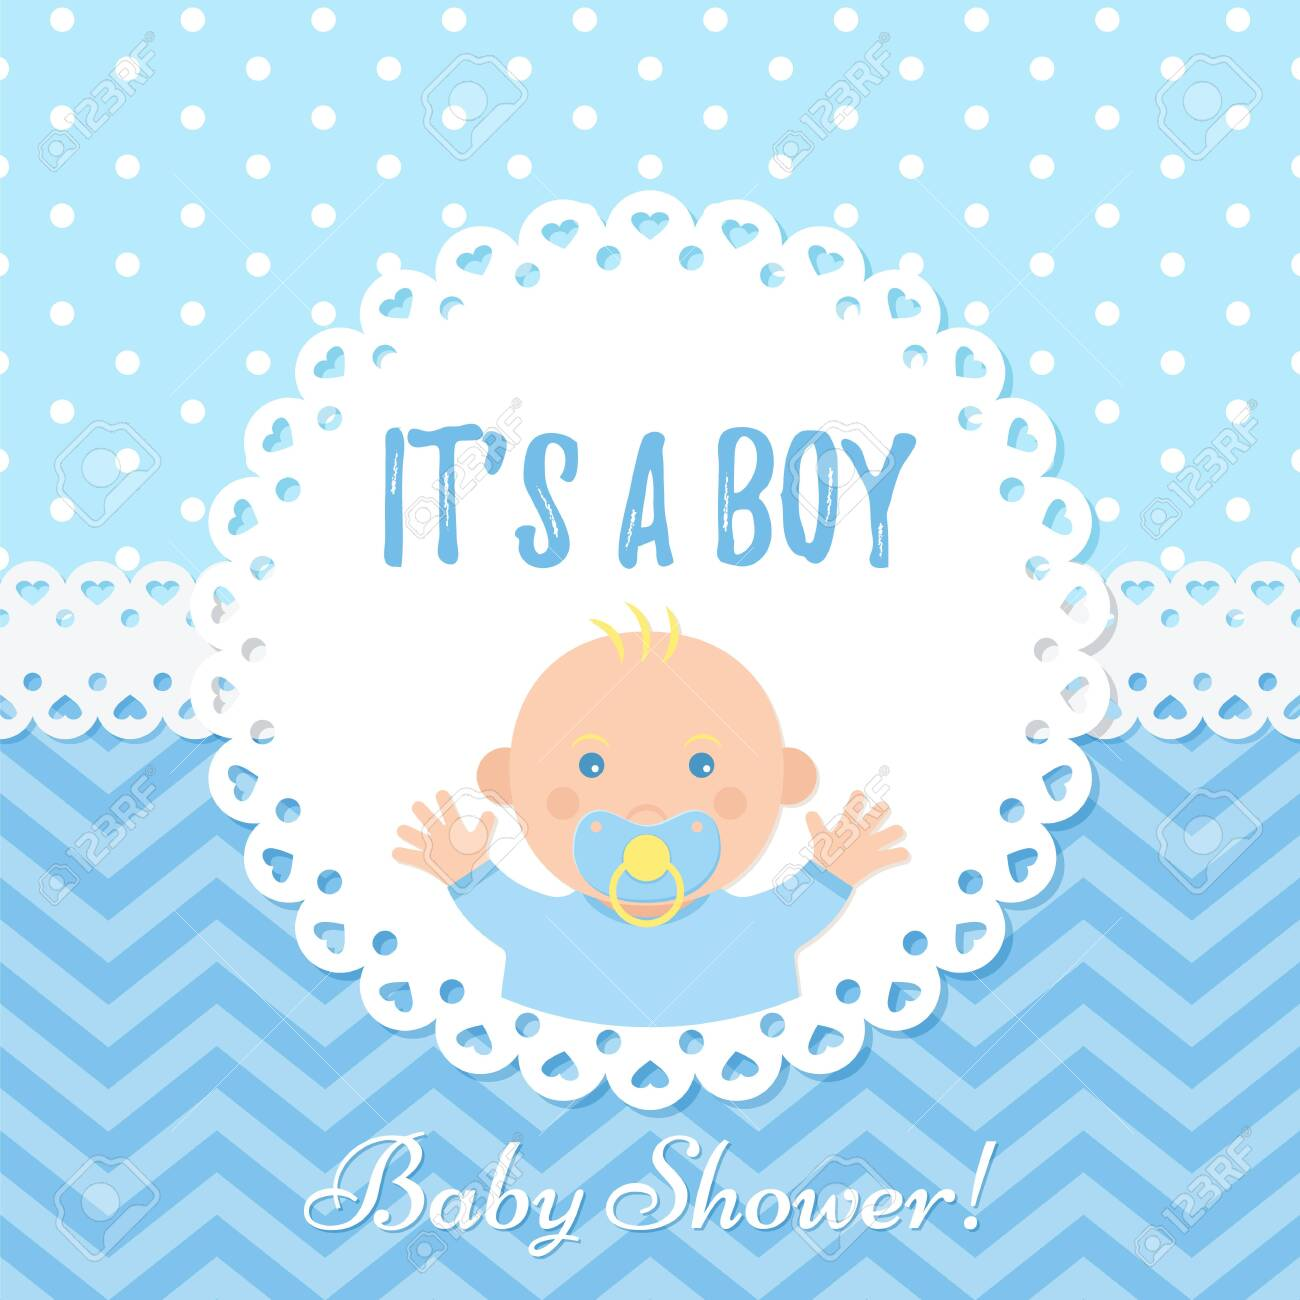 Baby Boy Card Baby Shower Boy Design Cute Blue Banner Vector Royalty Free Cliparts Vectors And Stock Illustration Image 122687701